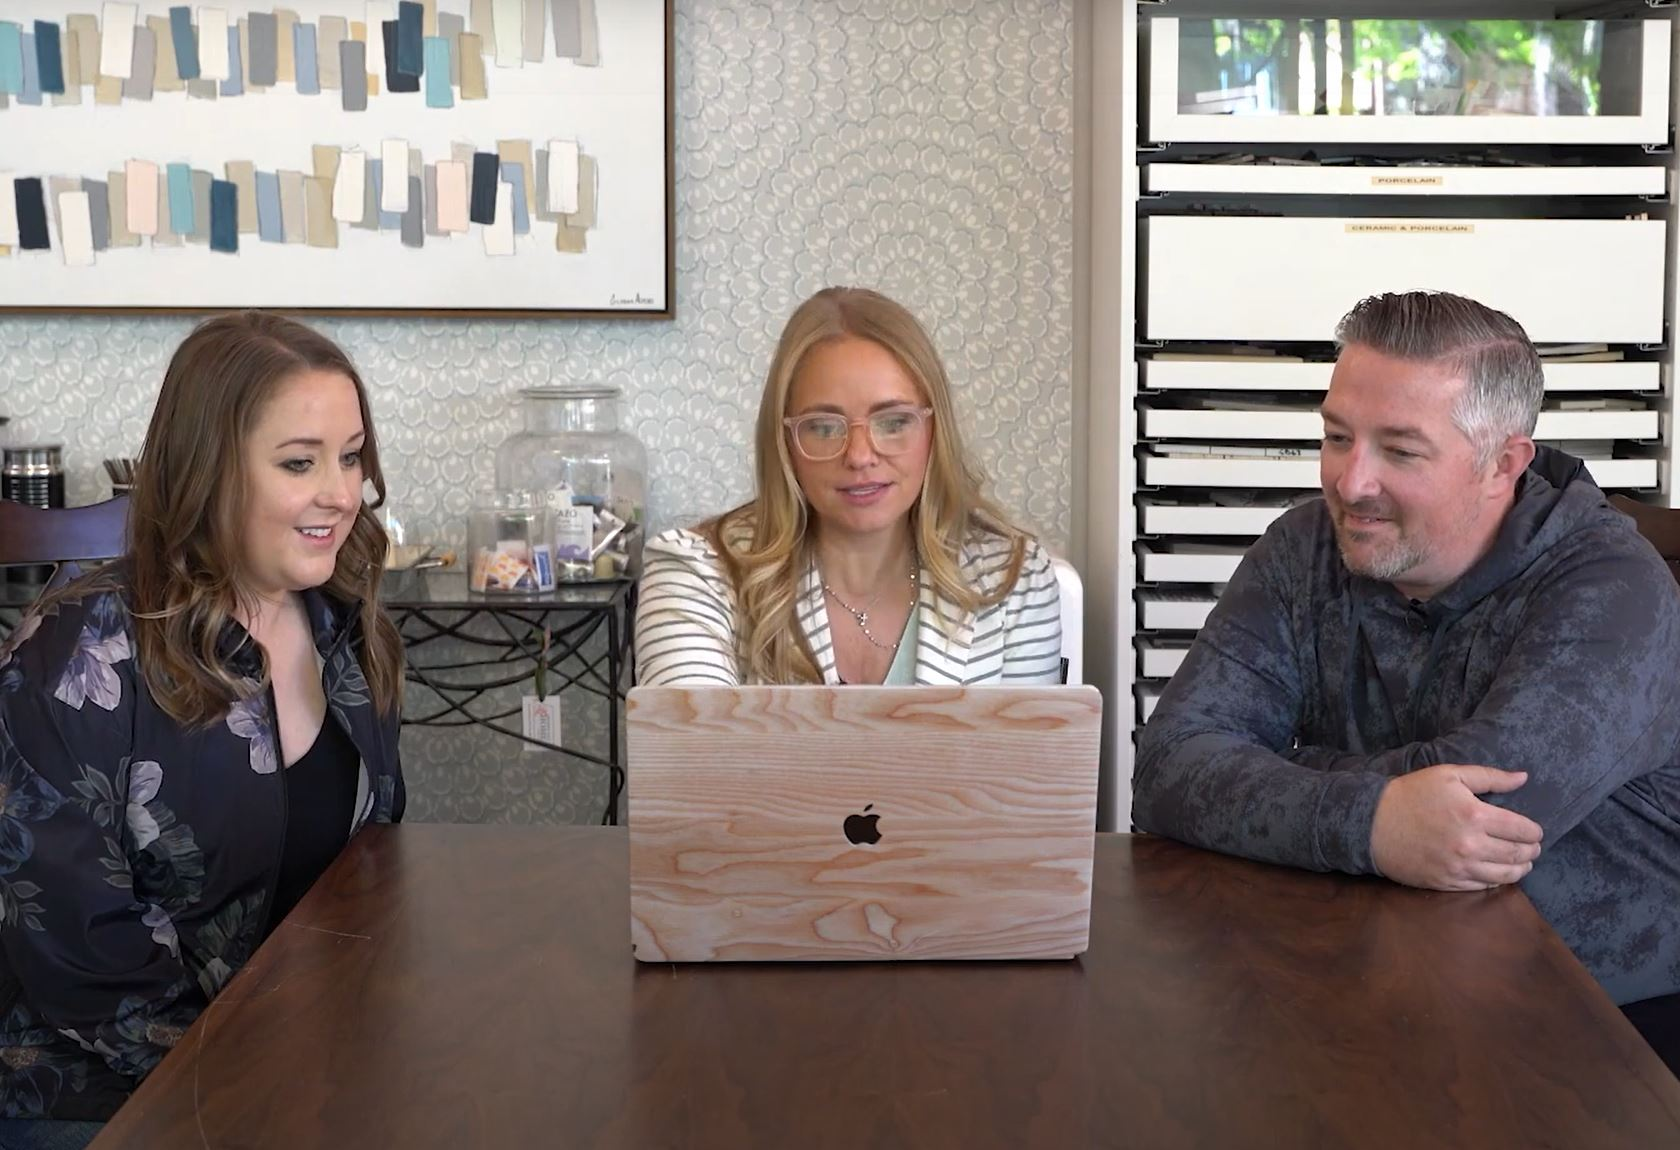 Tamara Day reviewing design ideas with the couple.